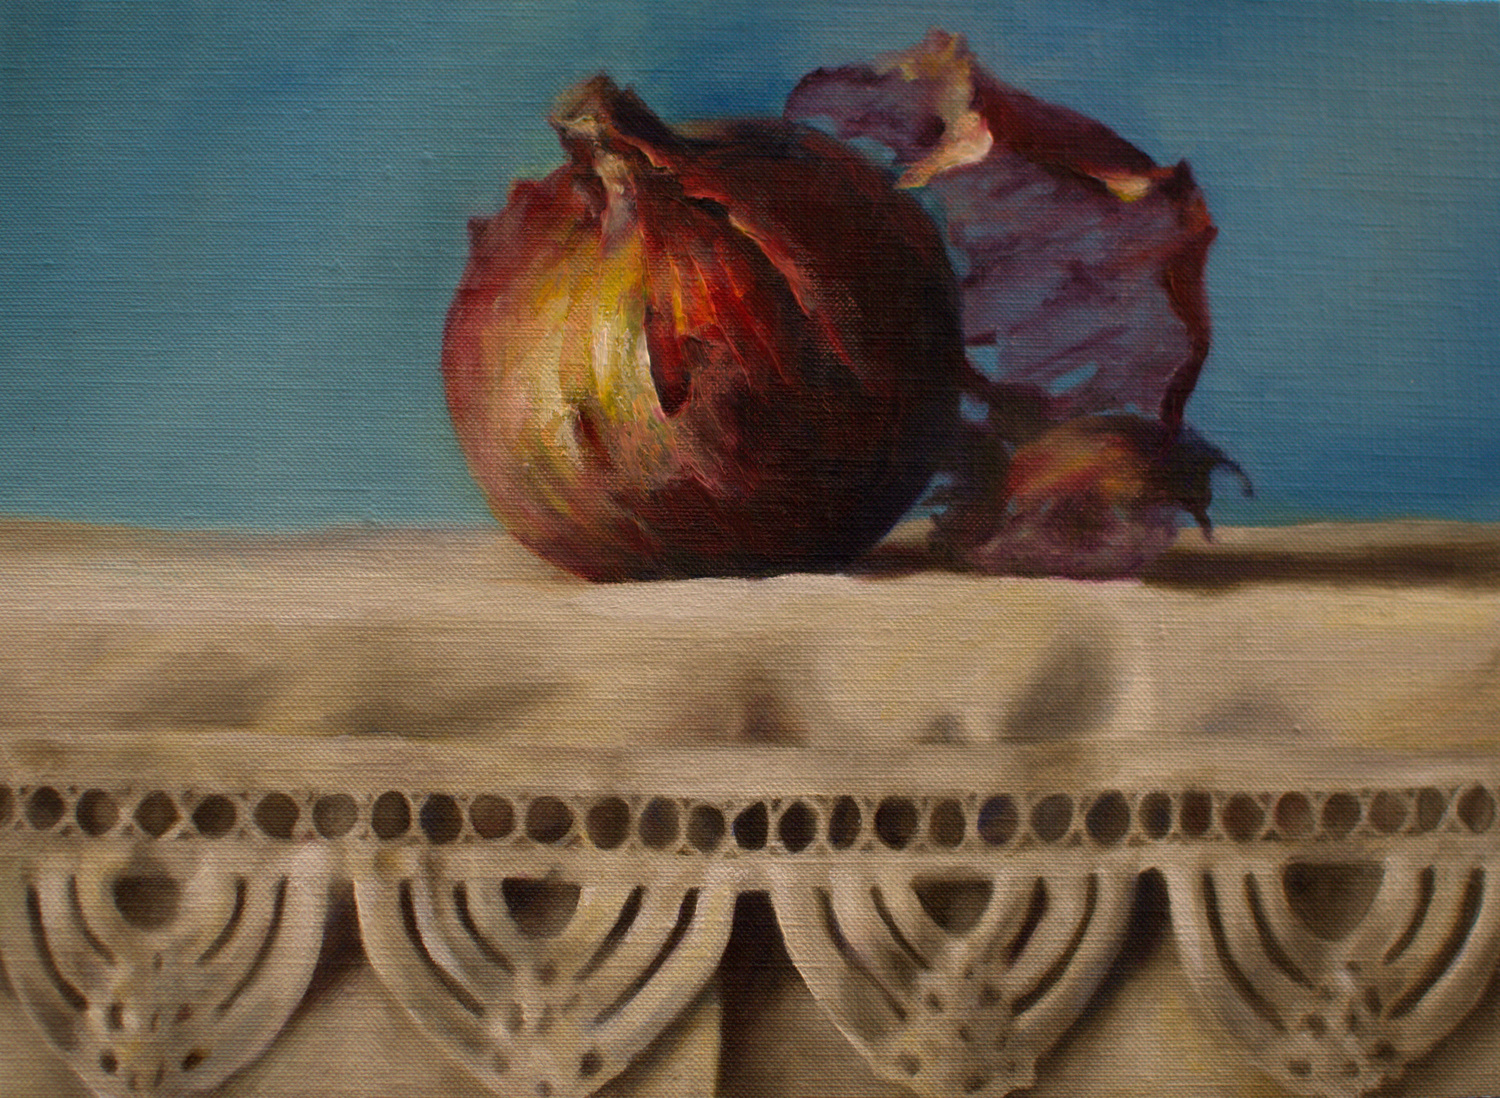 'The onion' oil on linen board